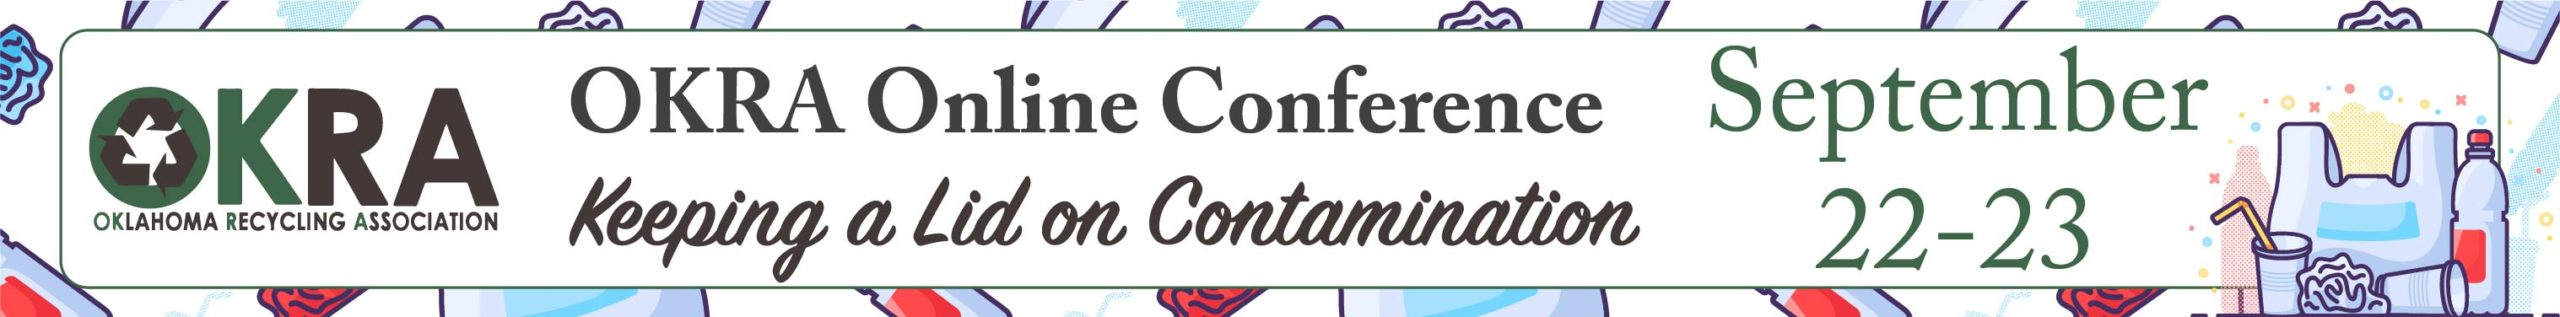 Conference theme - keeping a lid on contamination